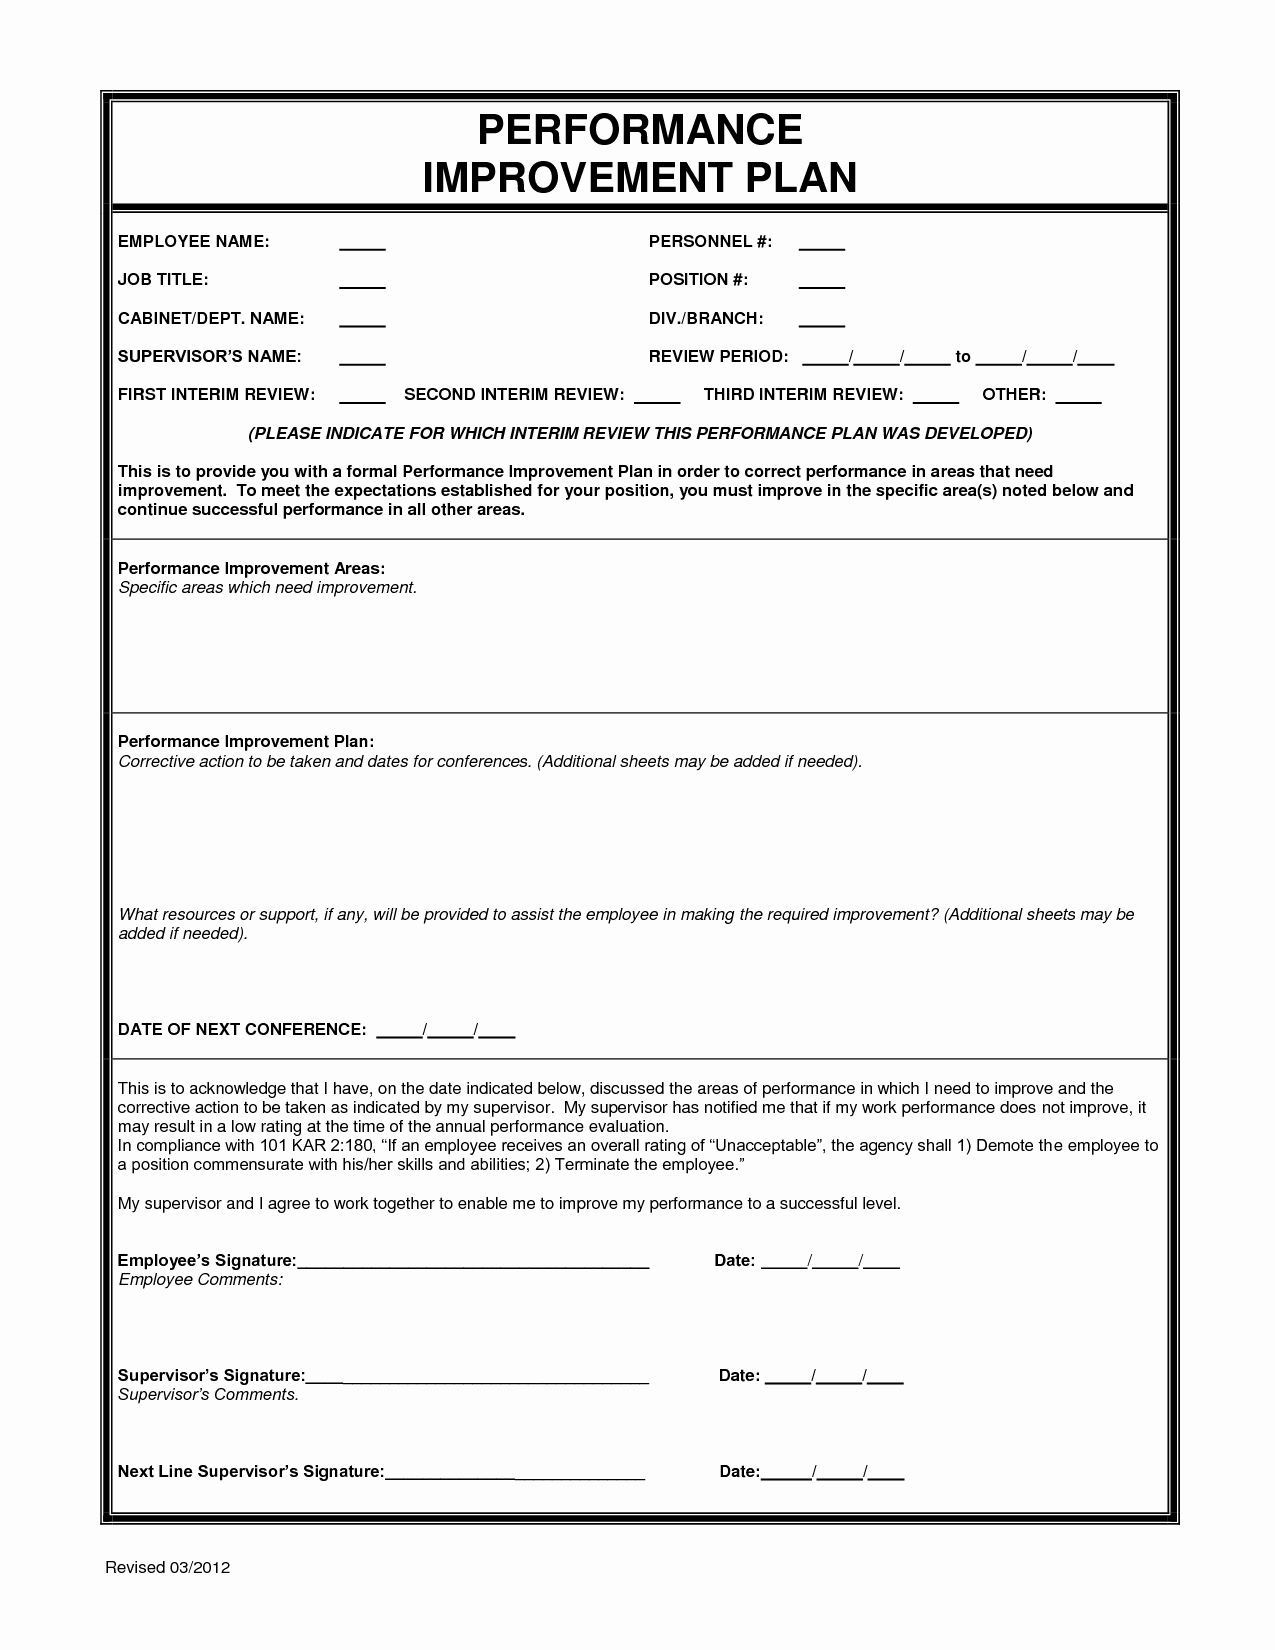 Employee Performance Plan Template Awesome Blank Employee Performance Action Plan form and Template